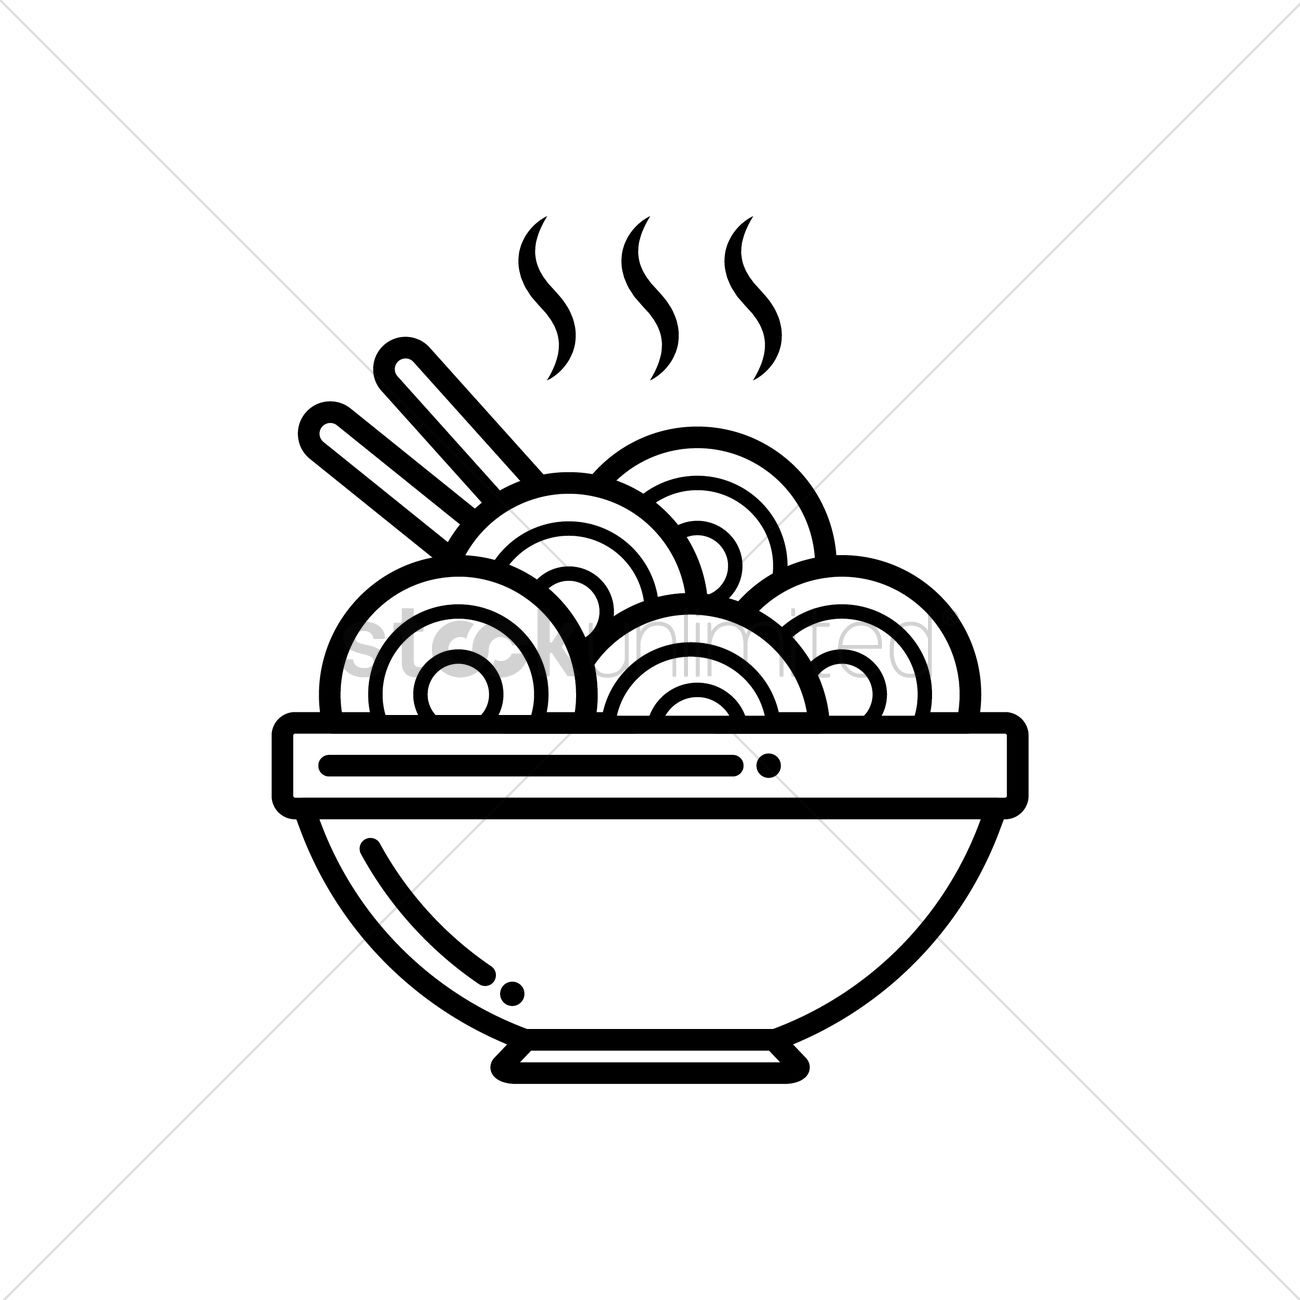 Steamy Bowl Of Hot Noodles Vector Image